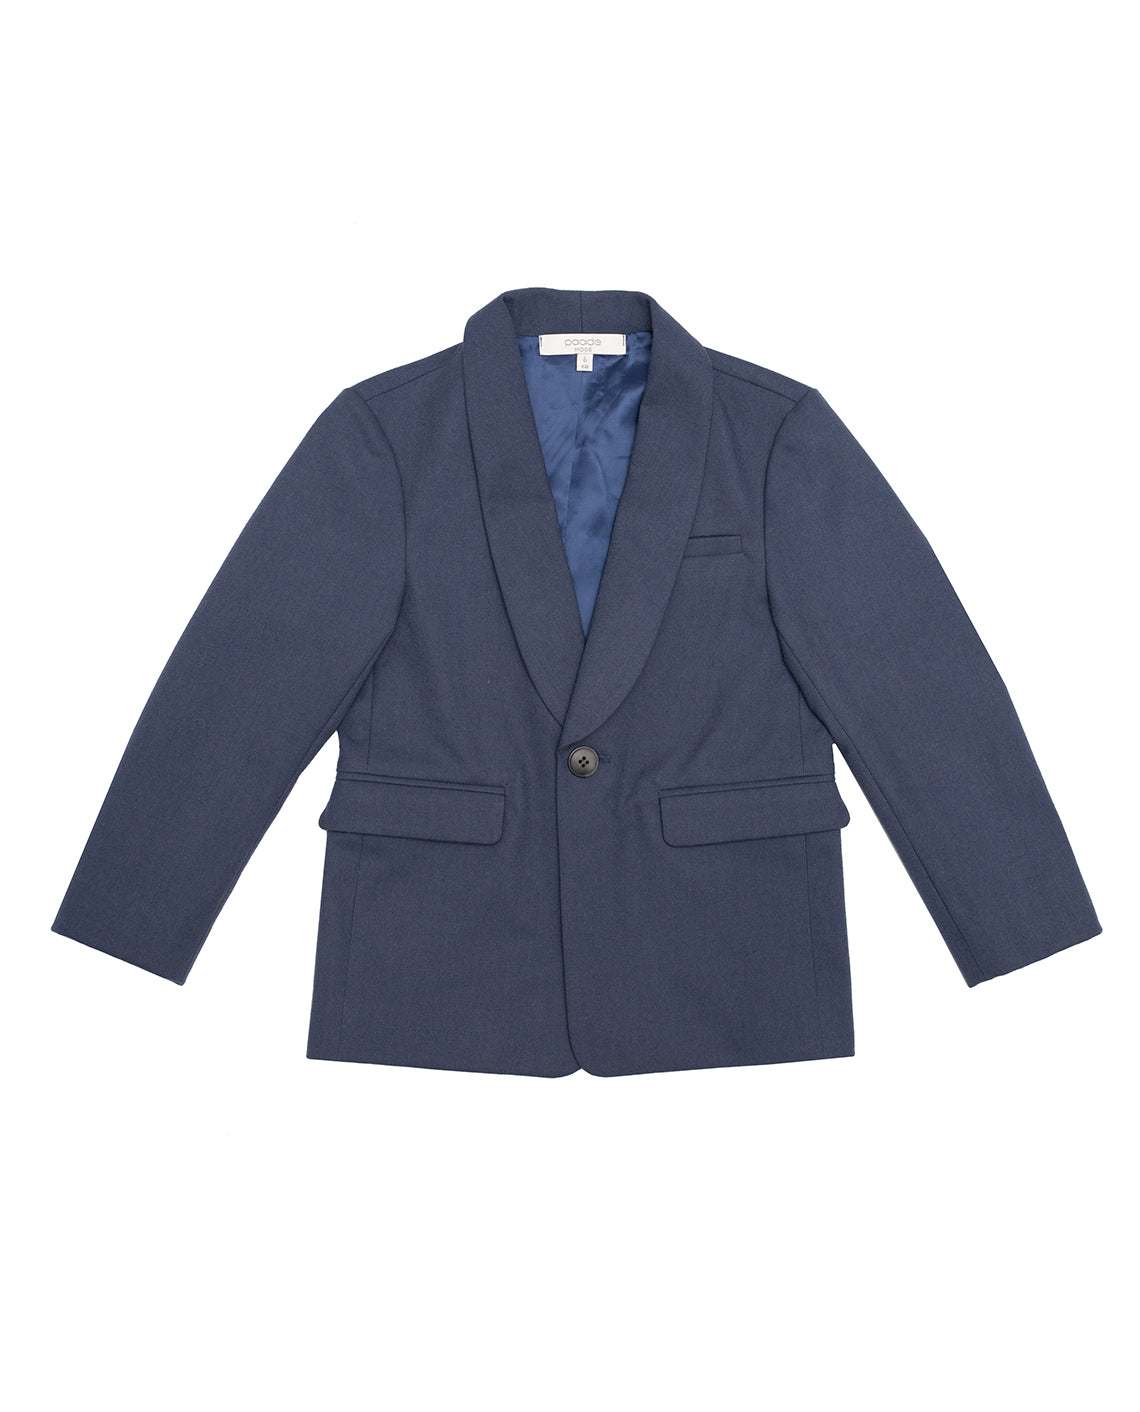 Paade Mode Ash Suit Jacket - Ladida